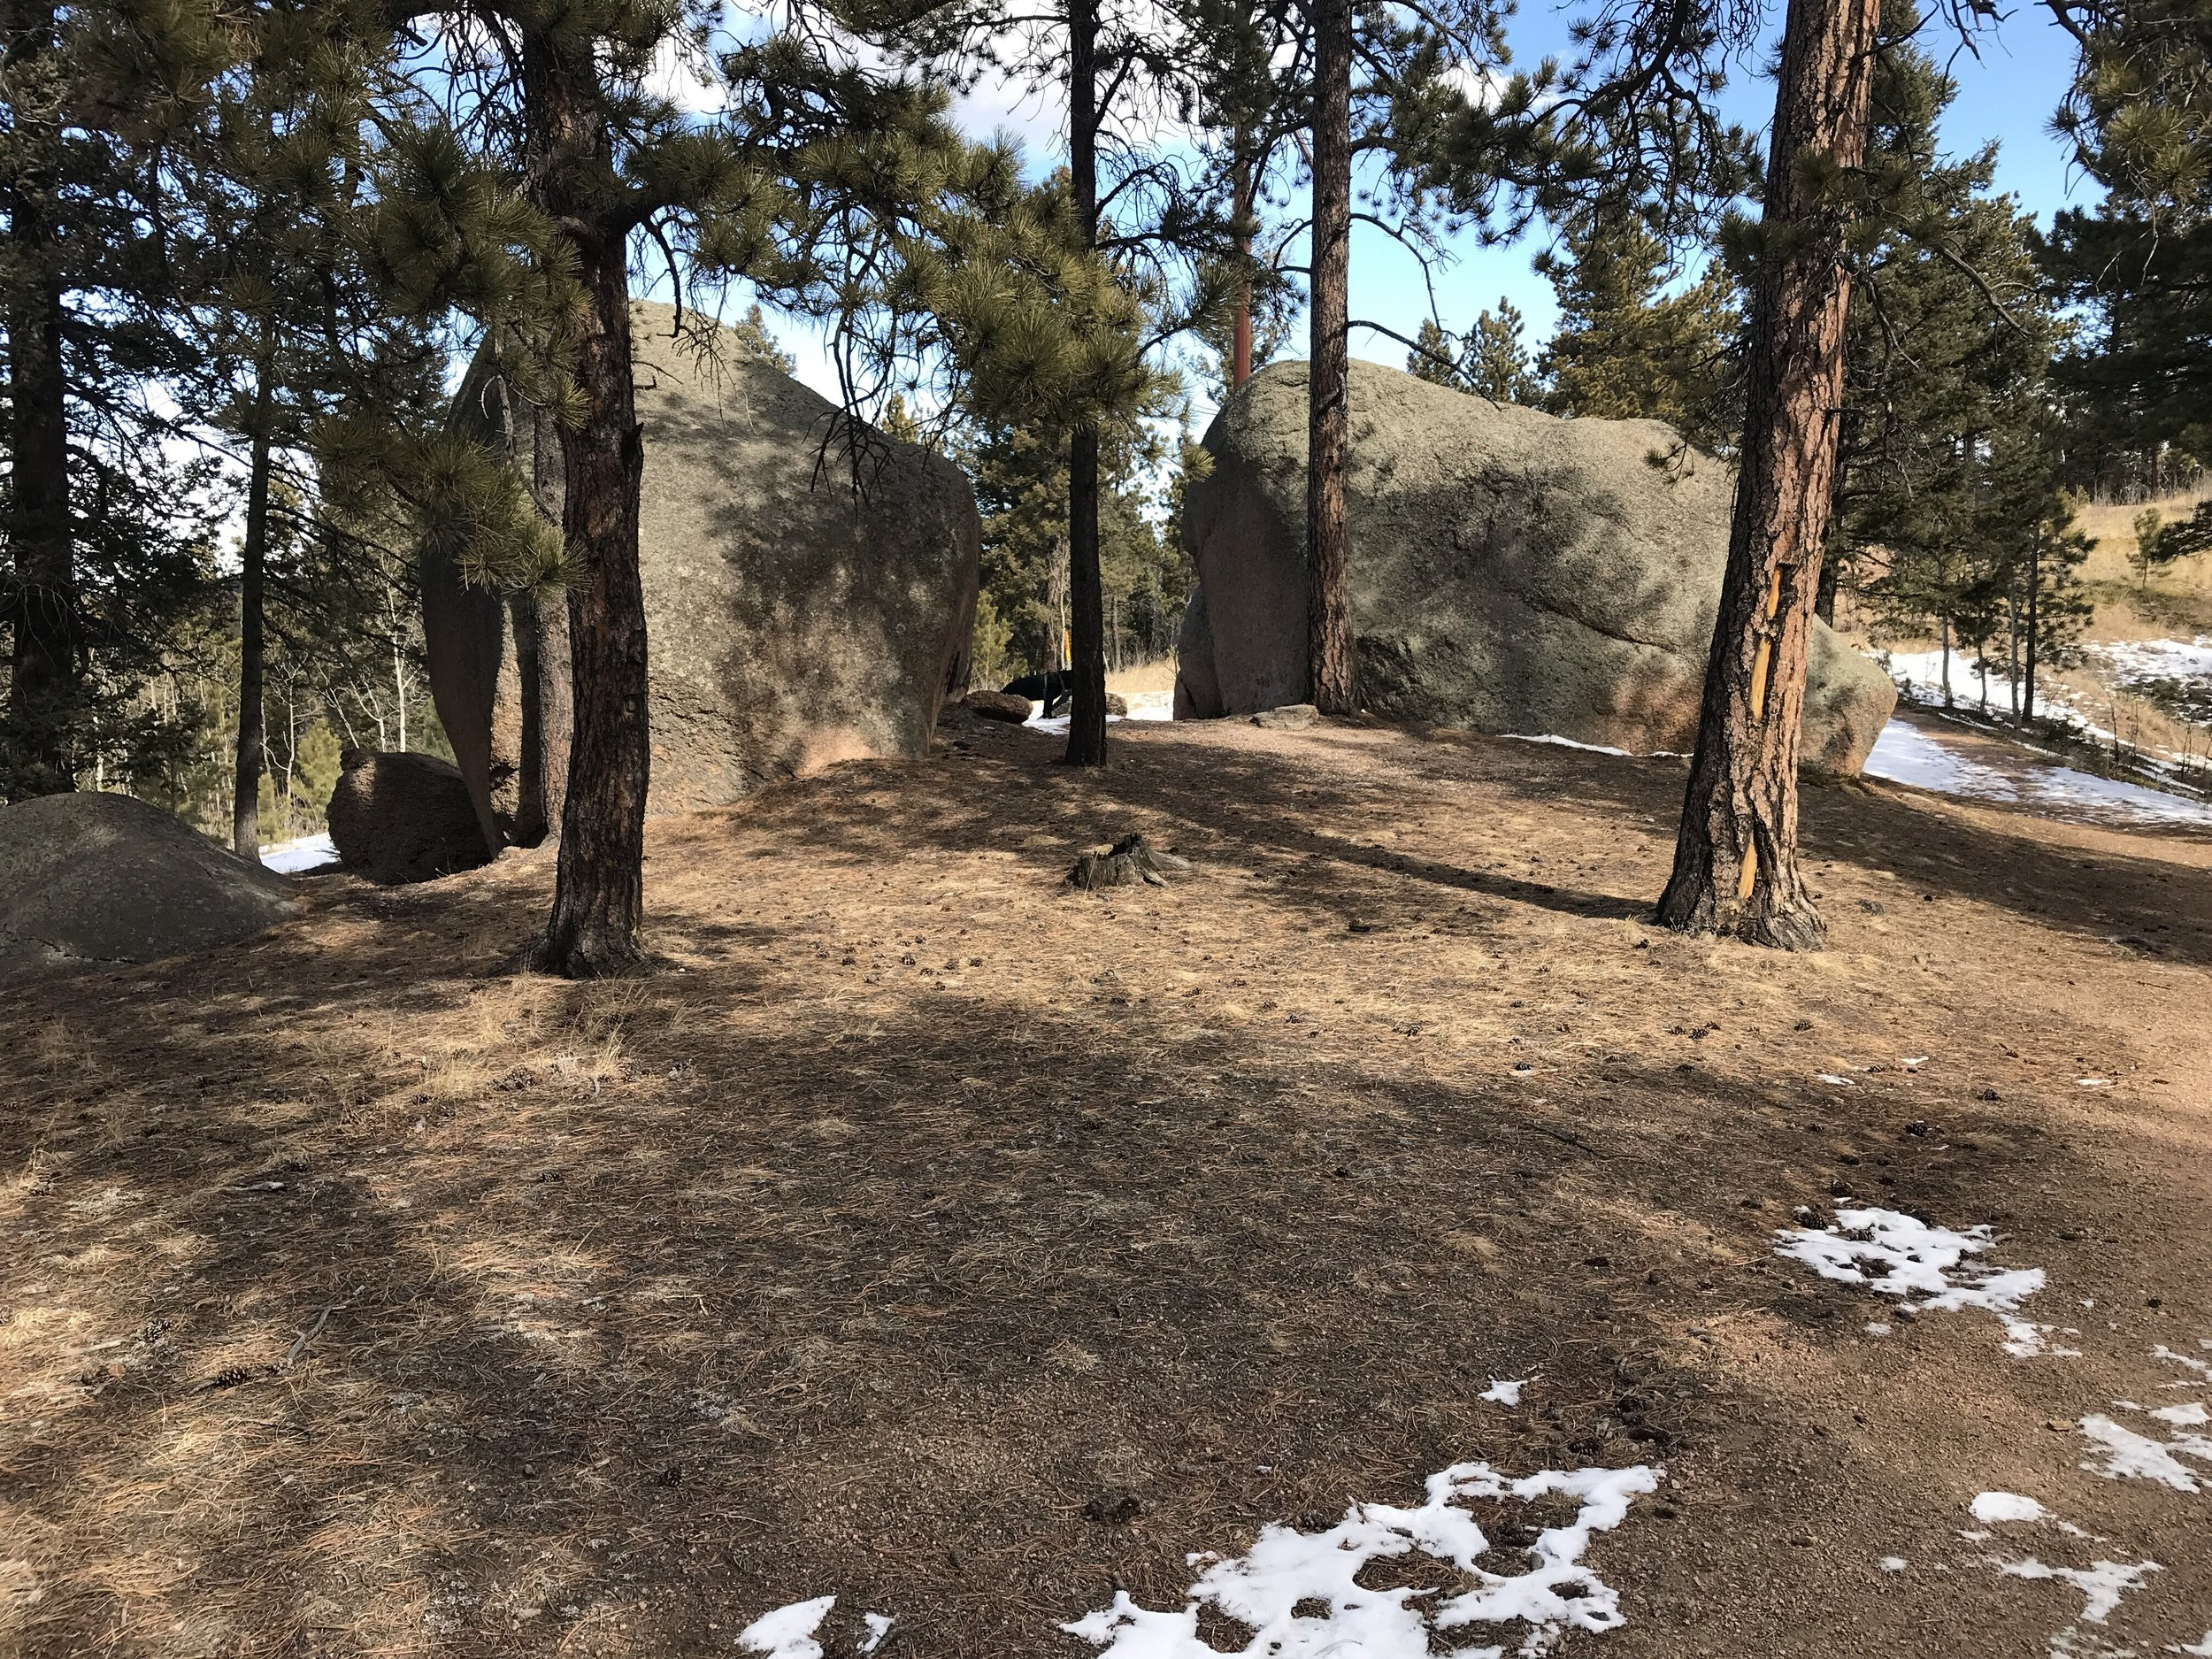 Lovell Gulch - This moderate trail is located just a few miles north of Woodland Park featuring a stream and views of Pikes Peak.